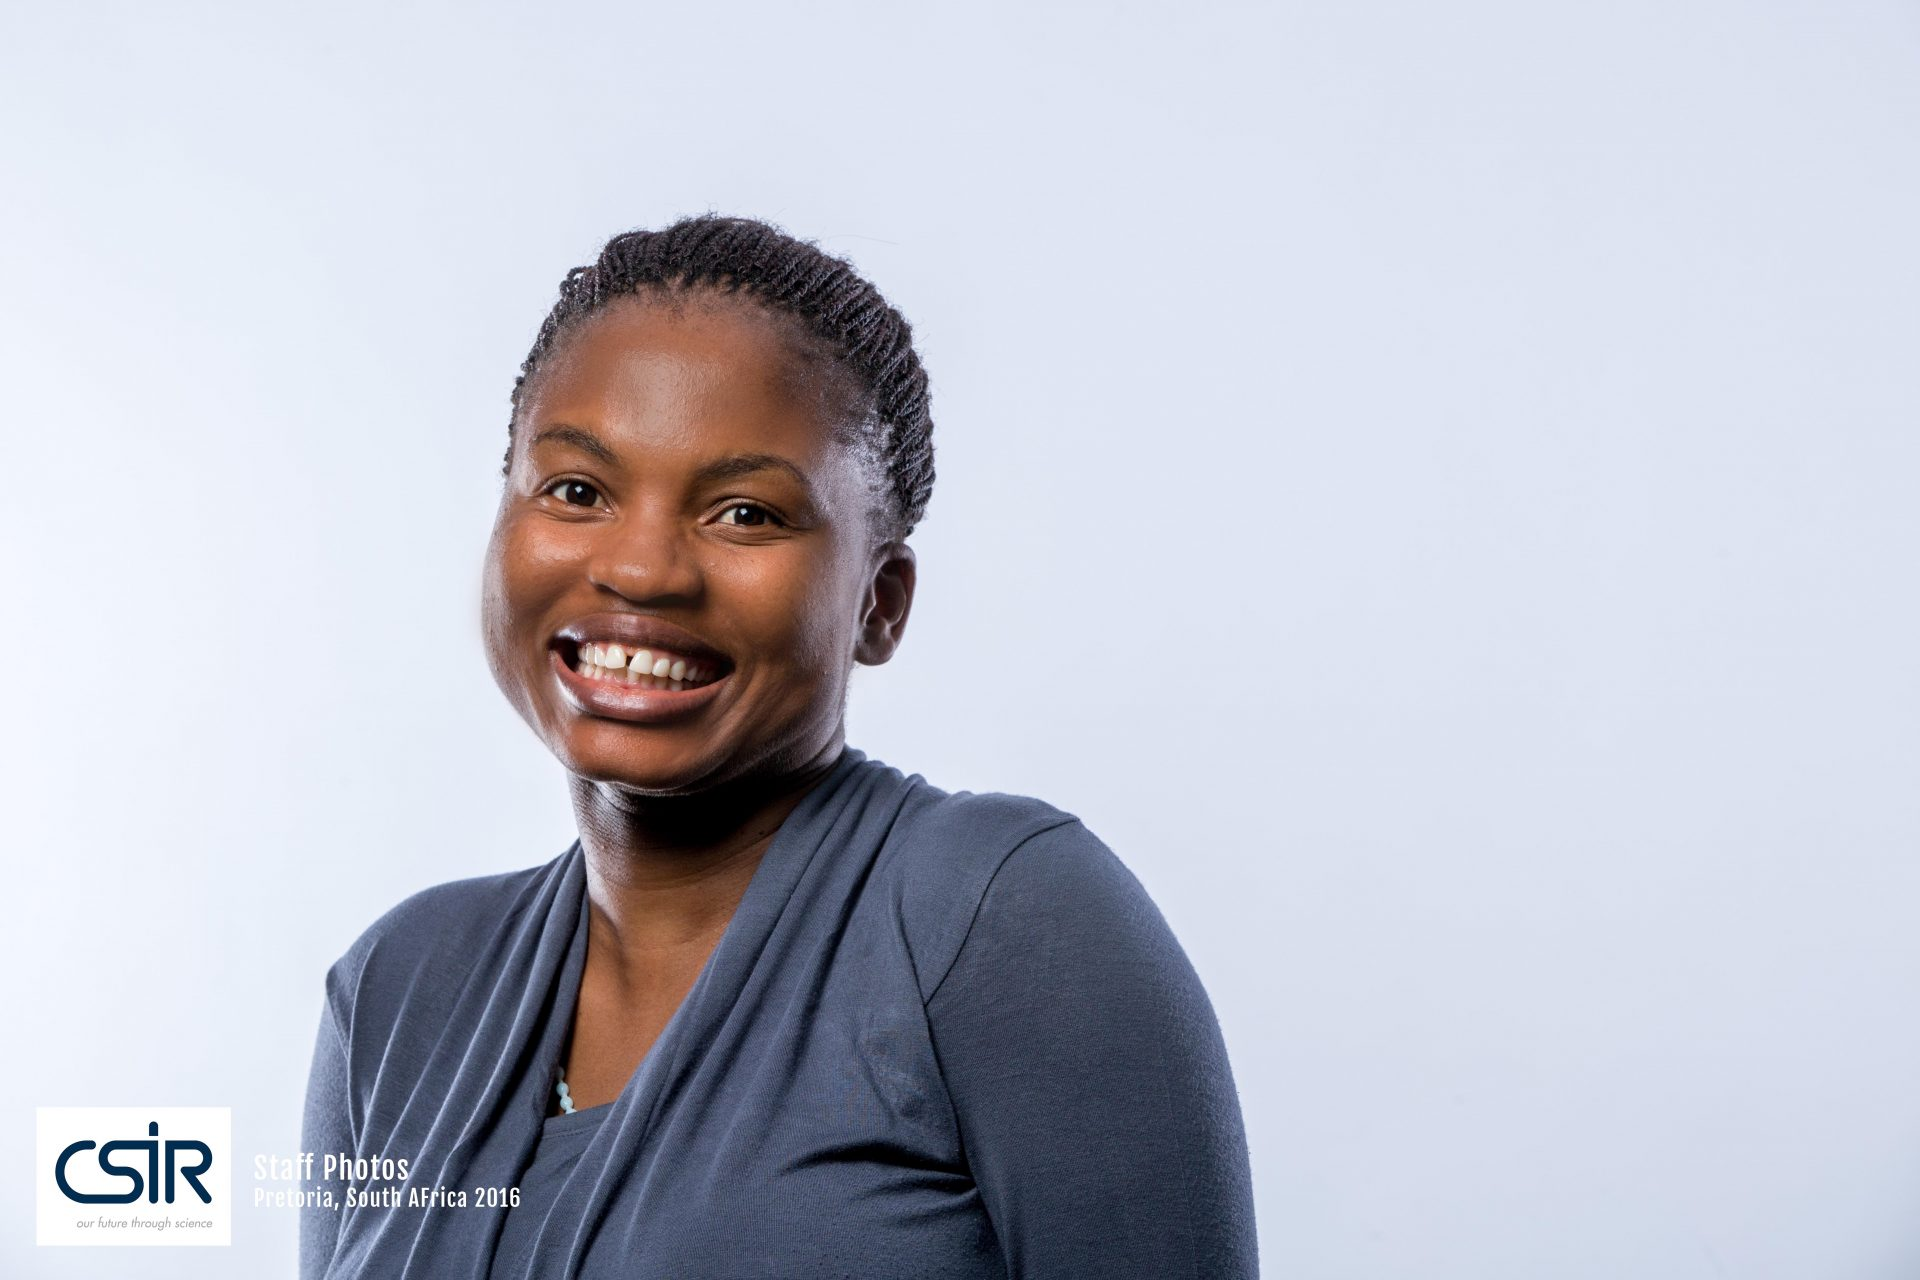 Portraits of  CSIR Staff - Black women in blue dress